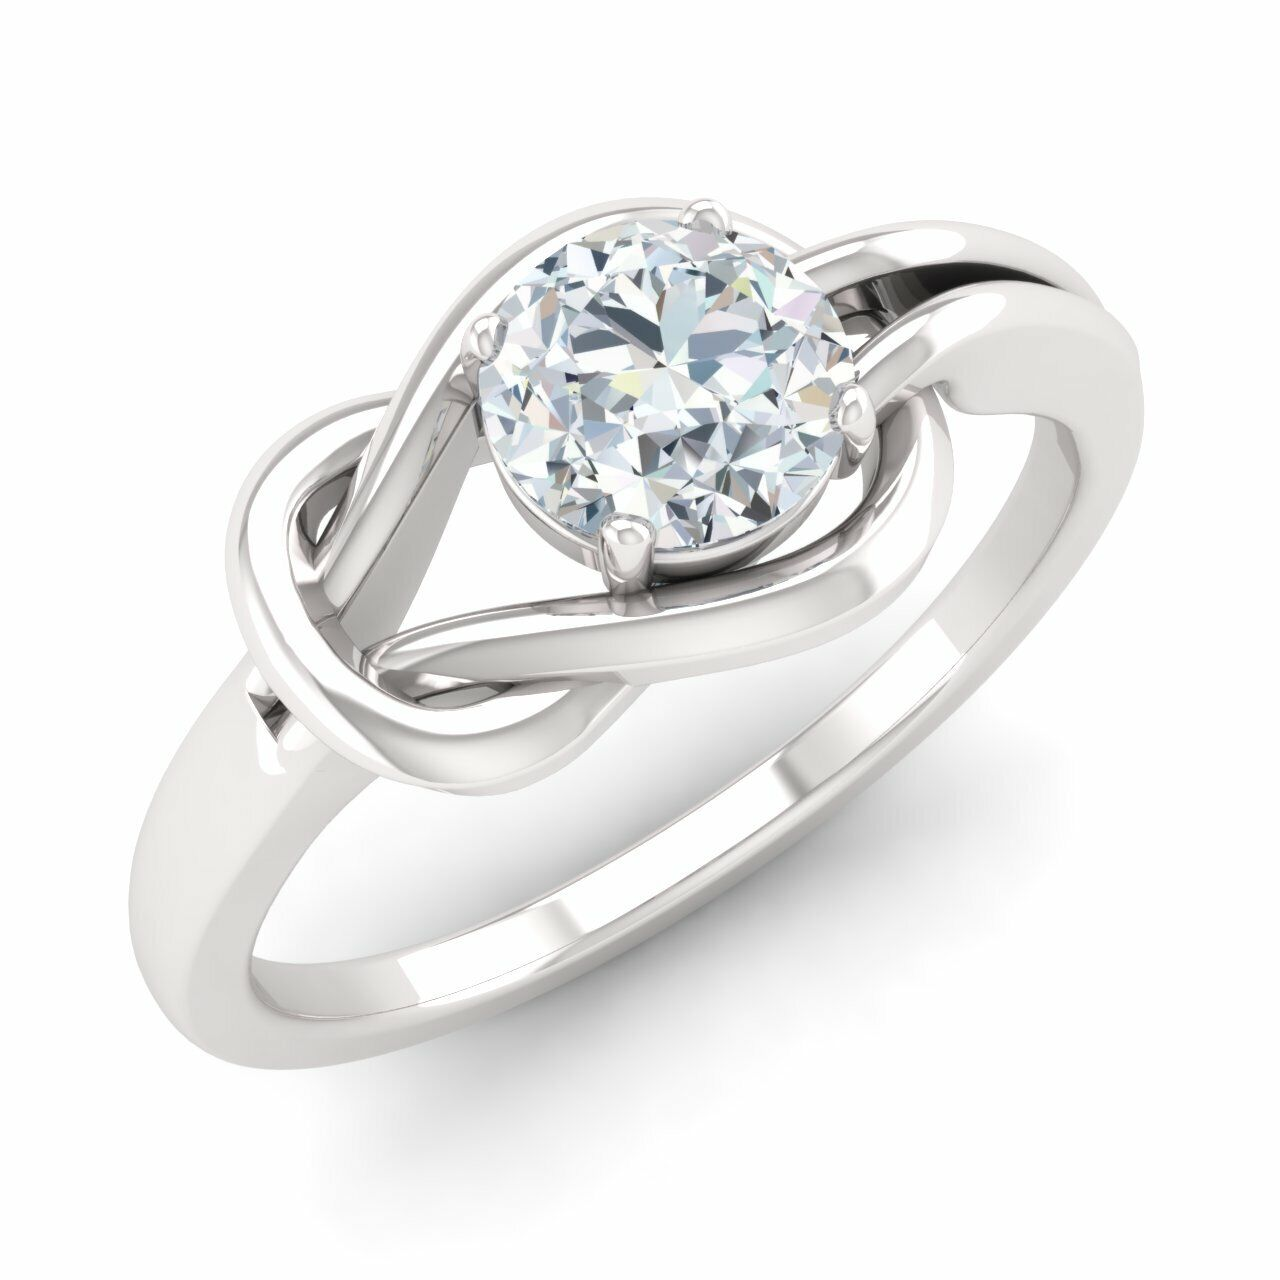 GIA Certified 0.30 Ct Real H/SI1 Diamond 14k White Gold Engagement Ring Size 6